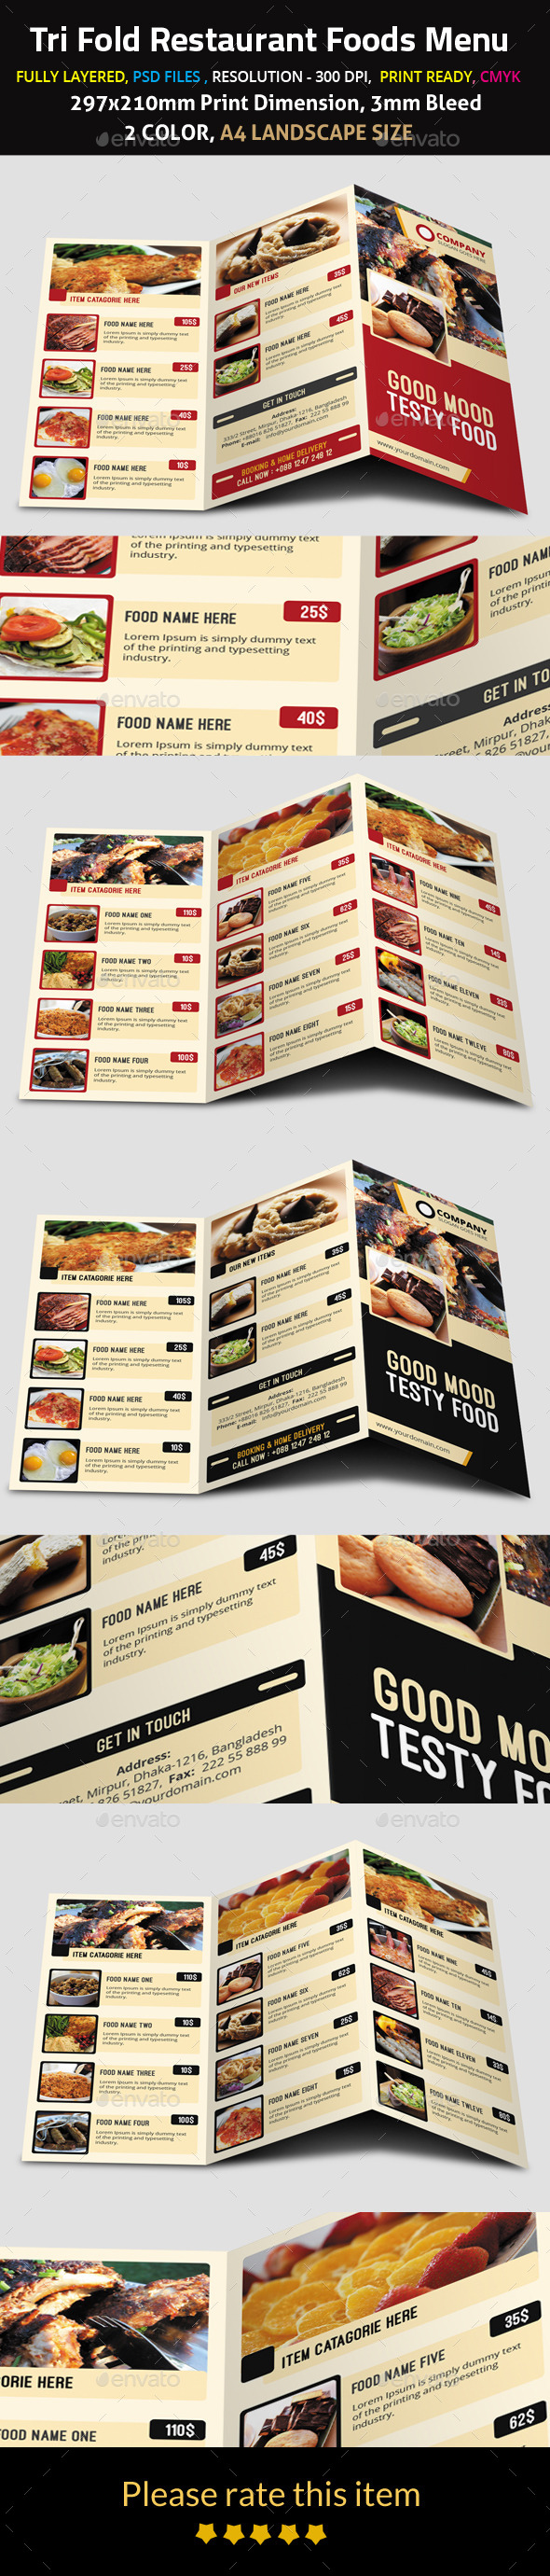 Tri Fold Restaurant Foods Menu - Food Menus Print Templates